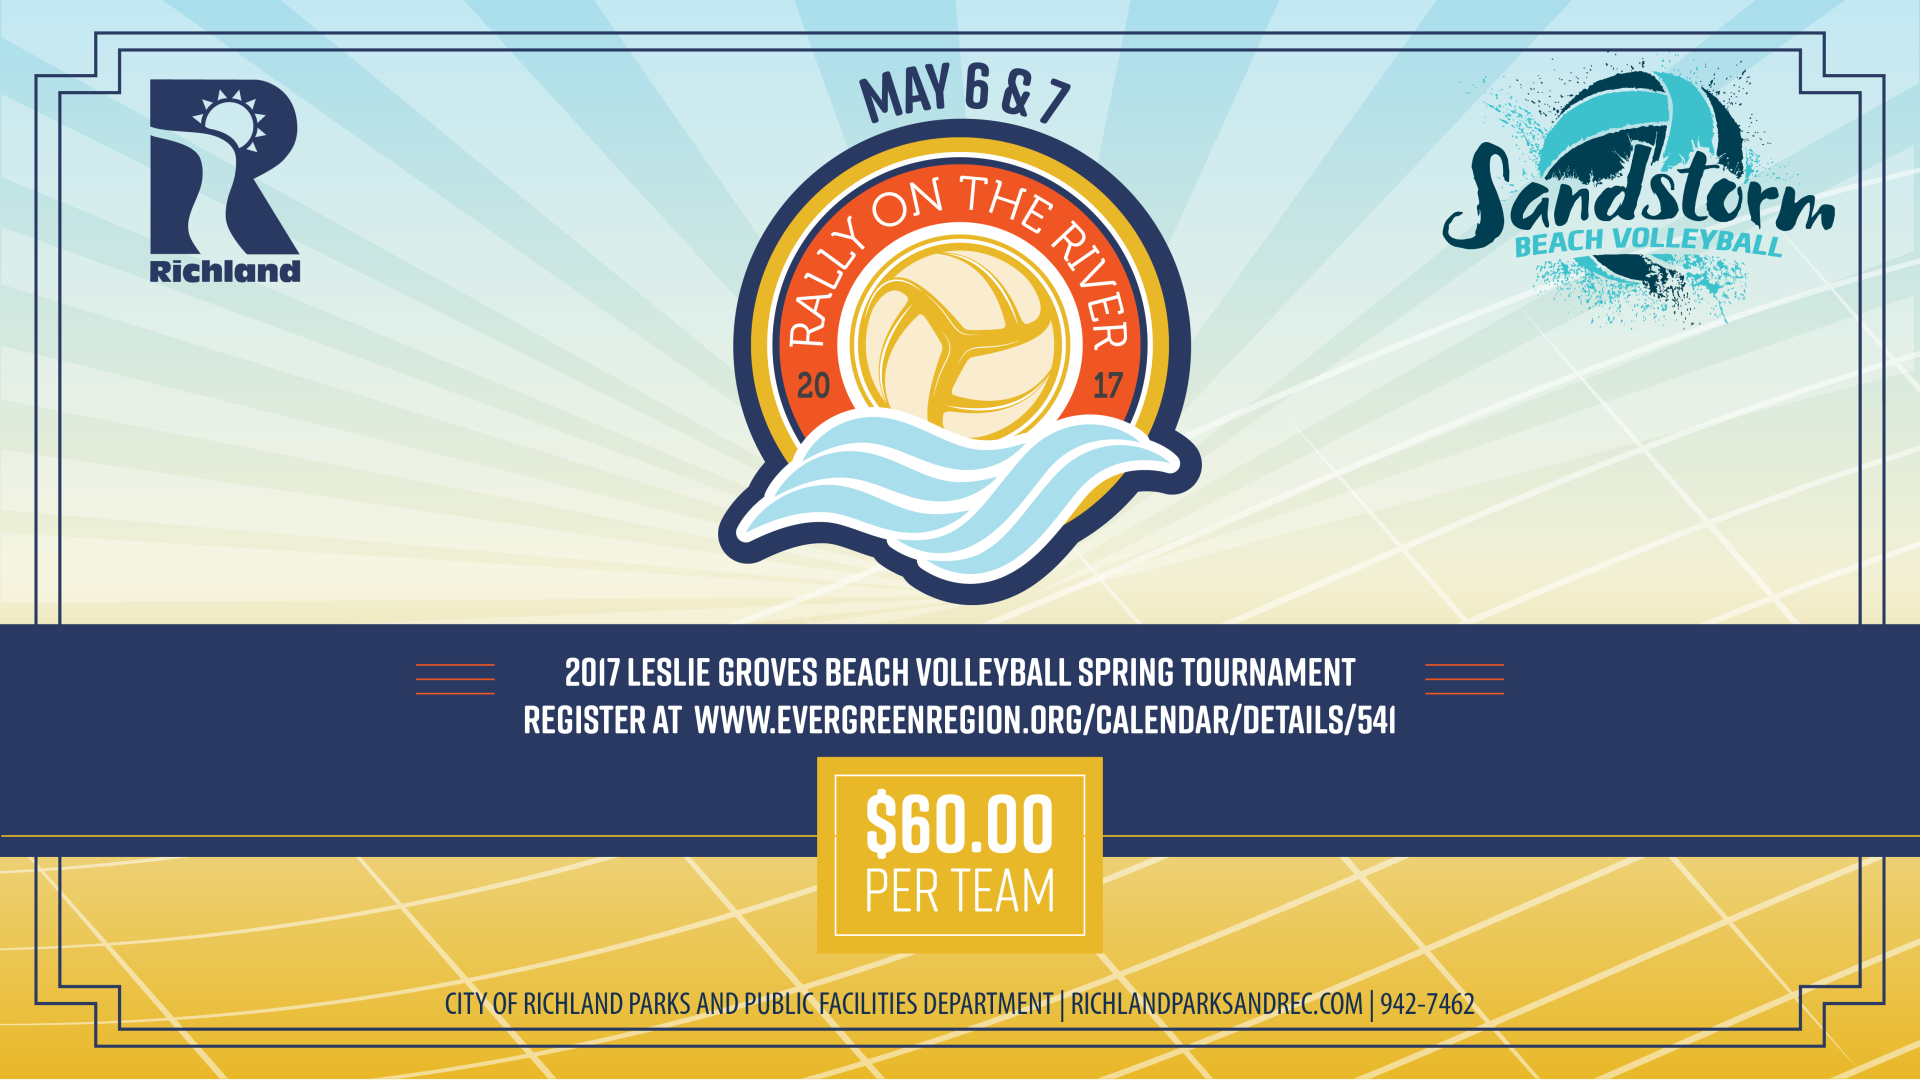 Richland Partners with Sandstorm Beach Volleyball for Rally on the River